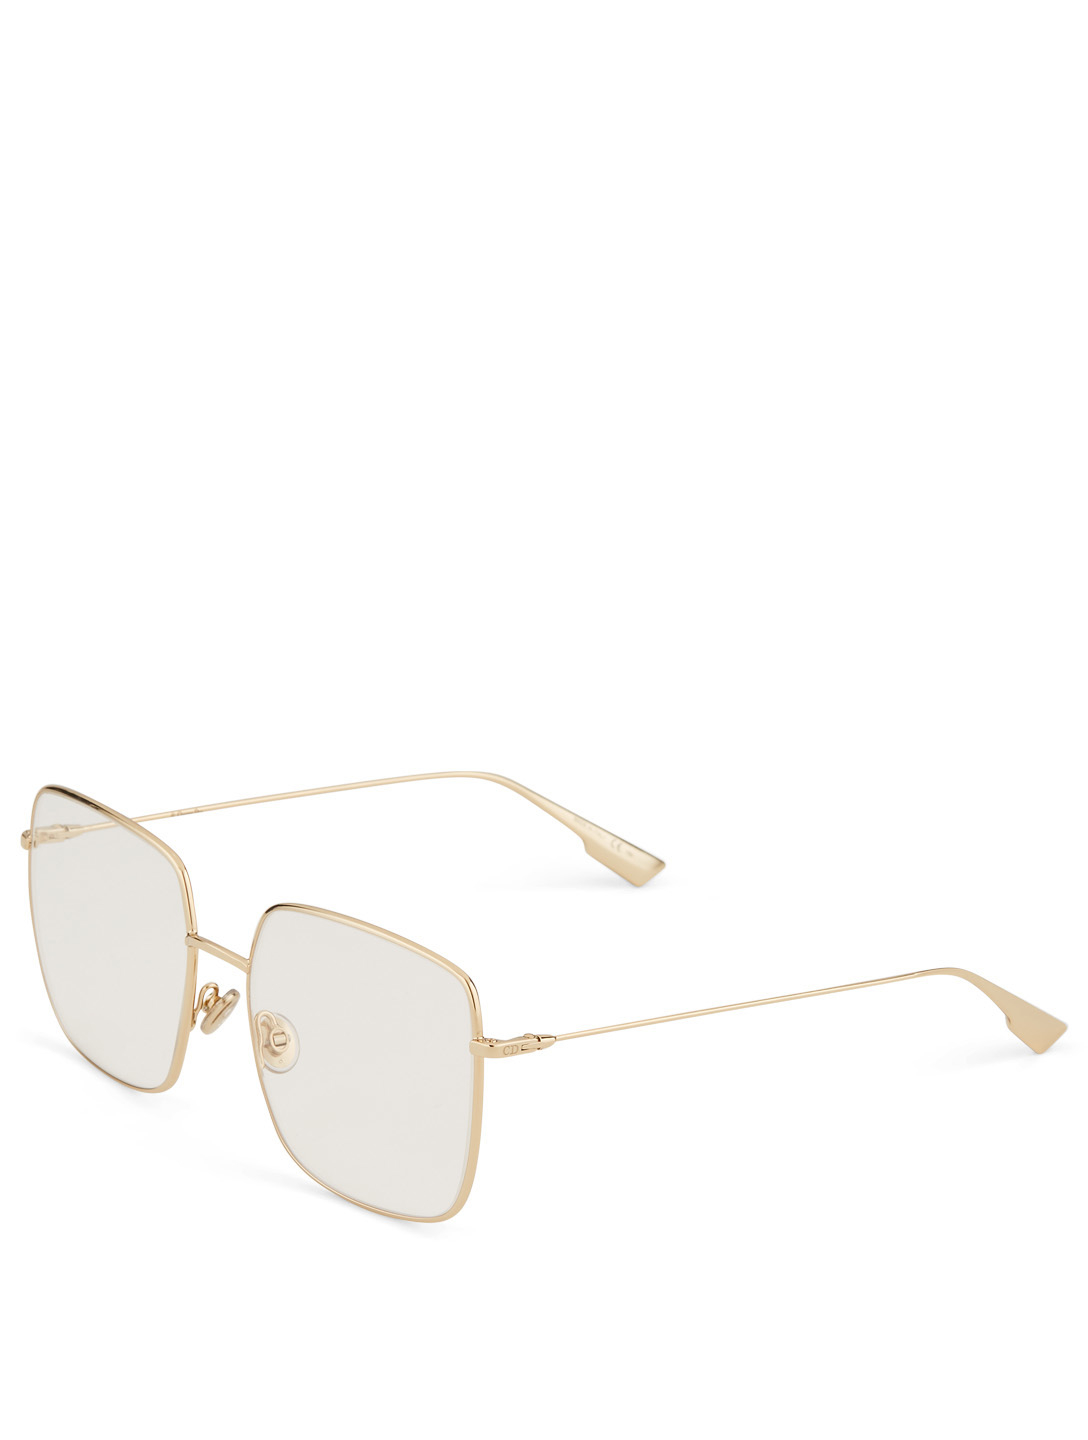 DIOR DiorStellaireO1 Square Optical Glasses Womens Gold